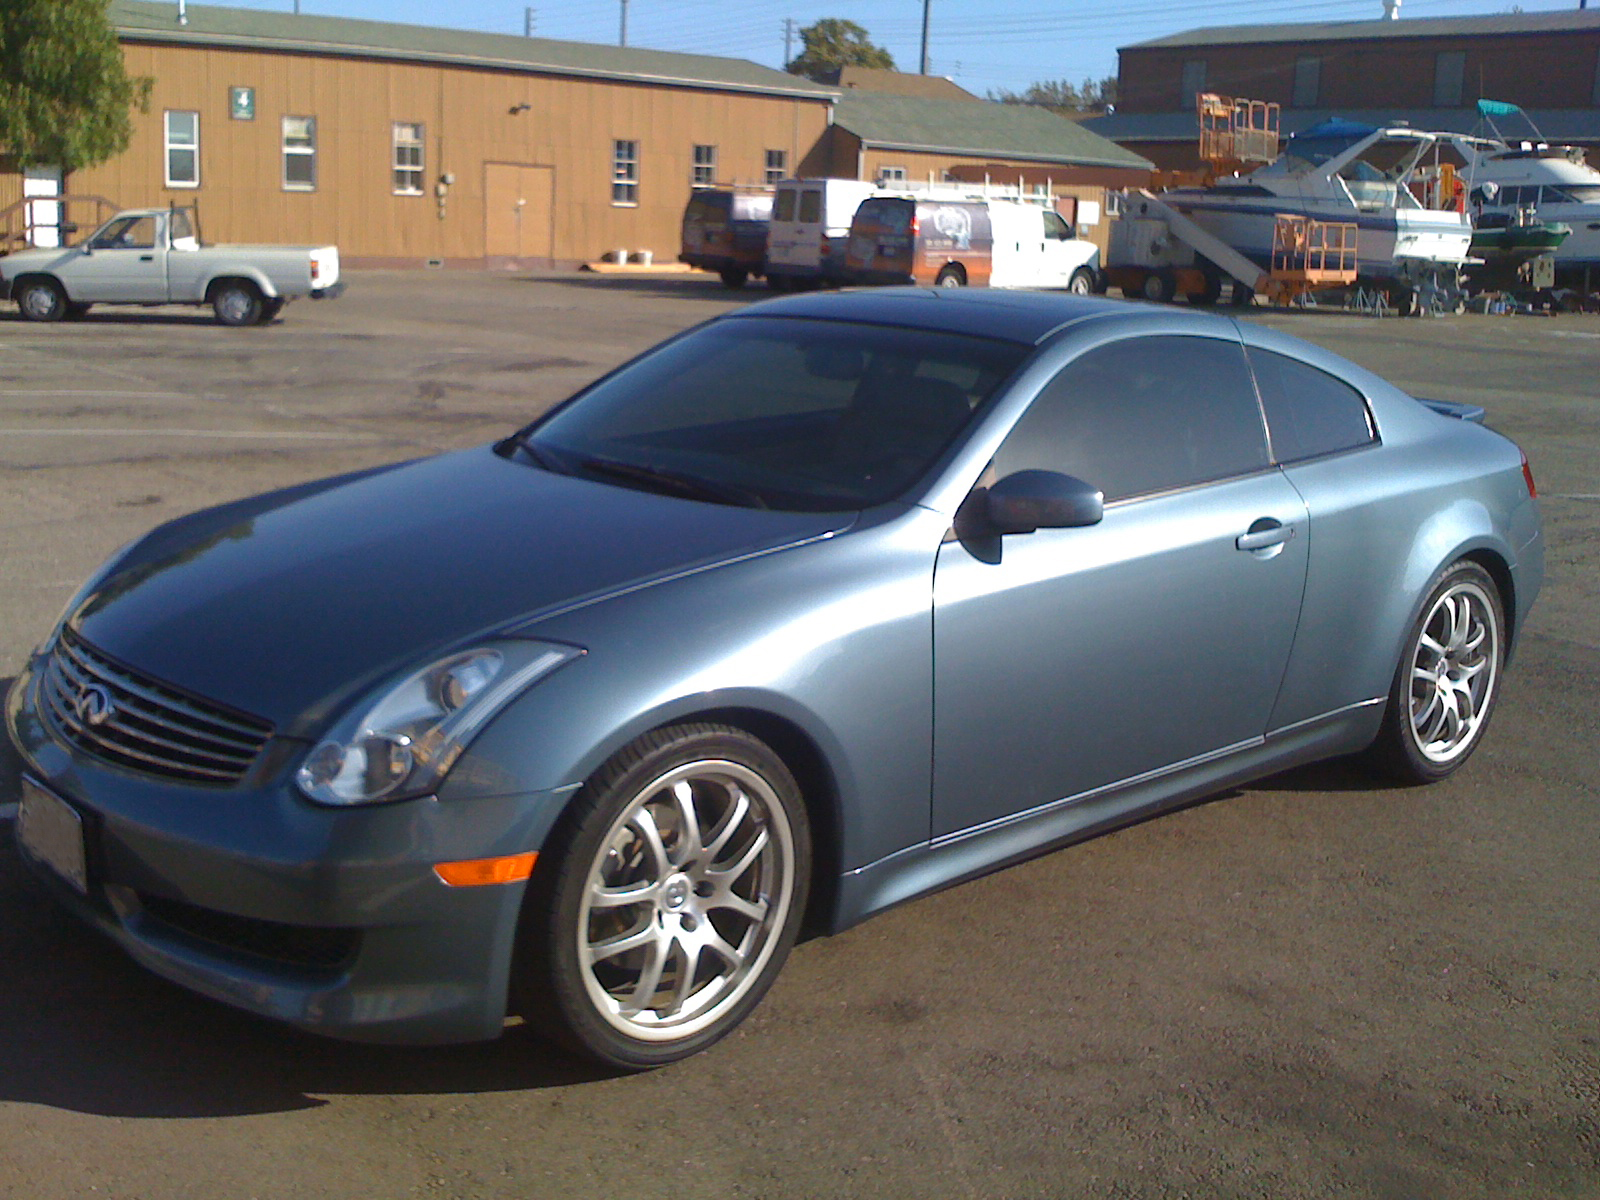 2006 infiniti g35 exterior pictures cargurus. Black Bedroom Furniture Sets. Home Design Ideas